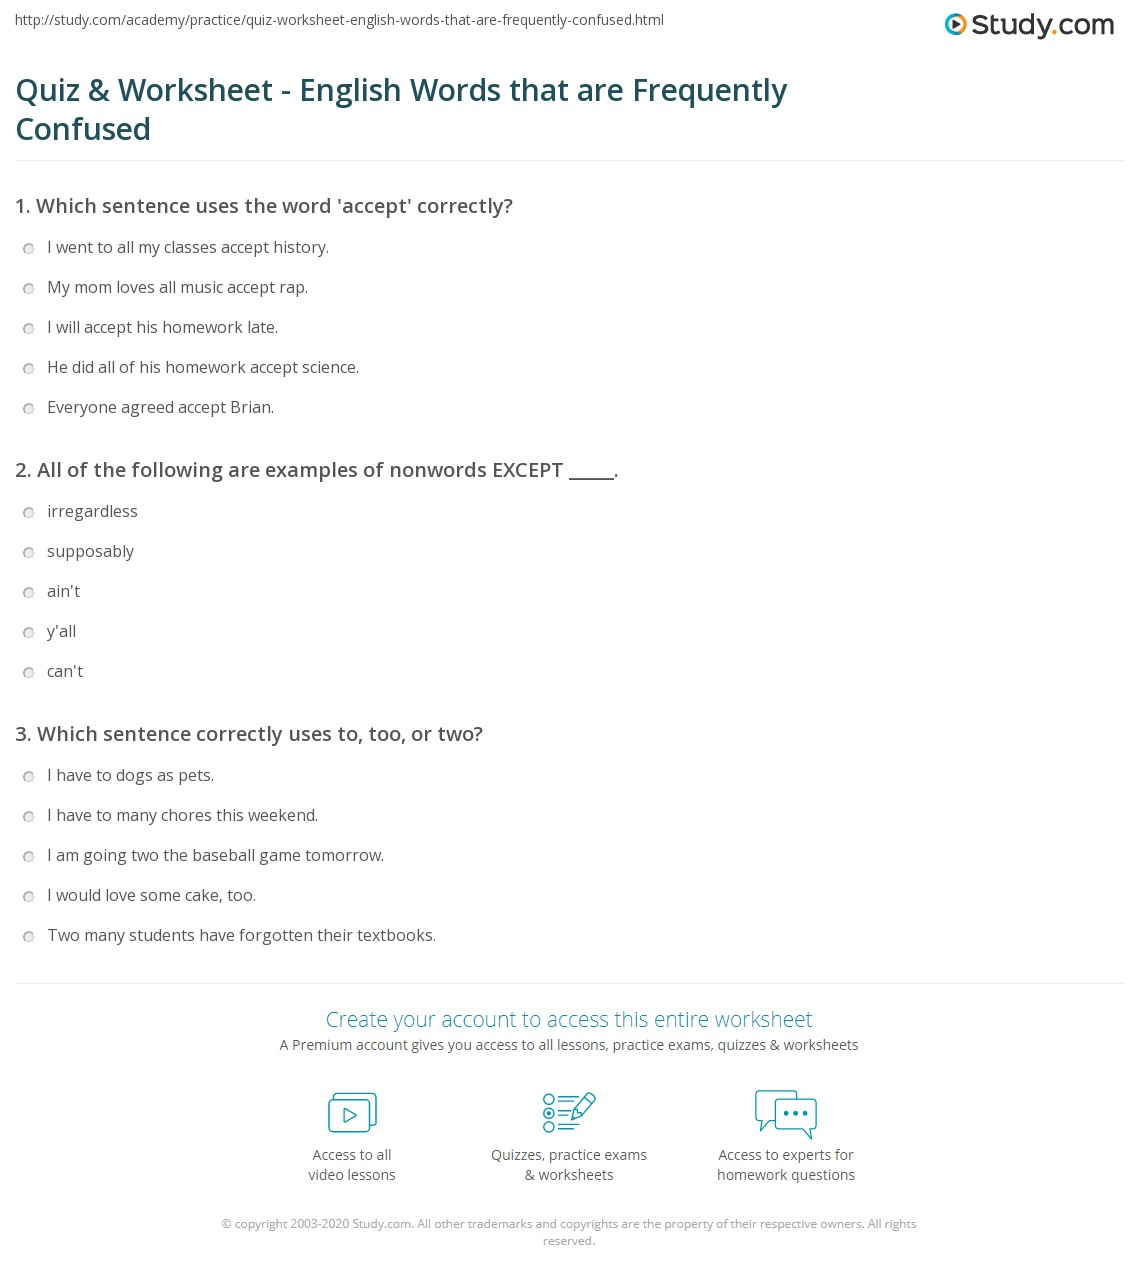 Quiz Worksheet English Words That Are Frequently Confused